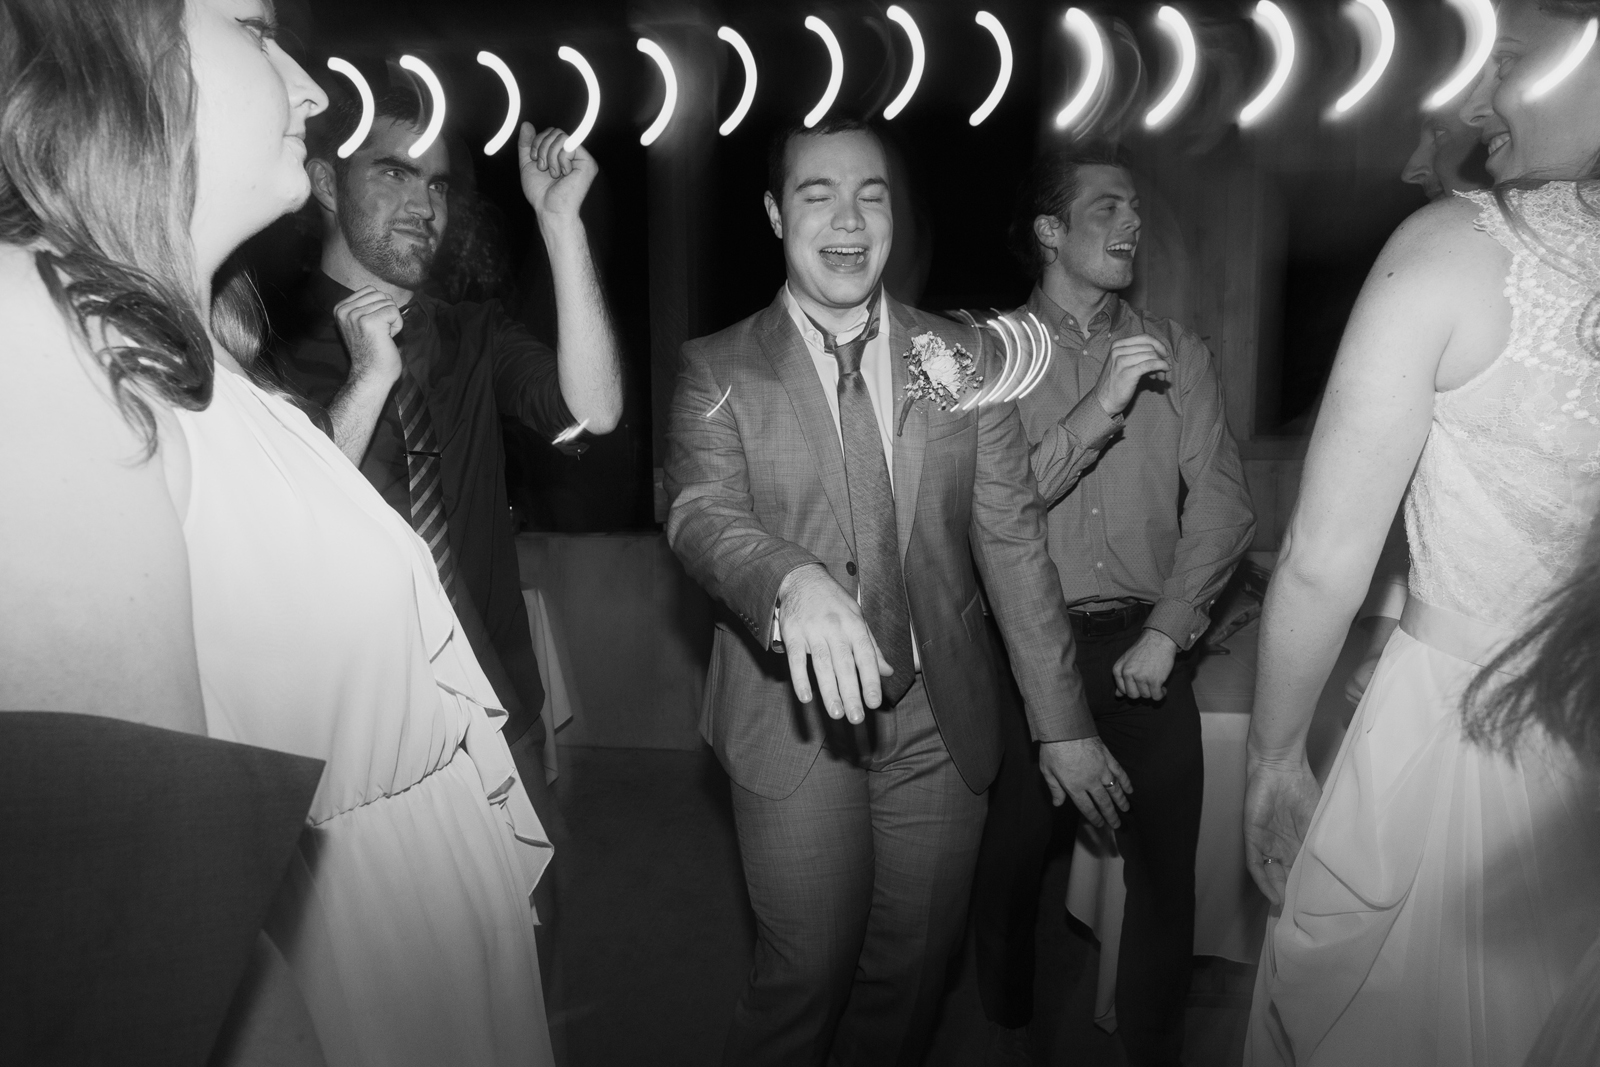 The groom dances during a wedding reception at Bridal Veil Lakes in Corbett, OR